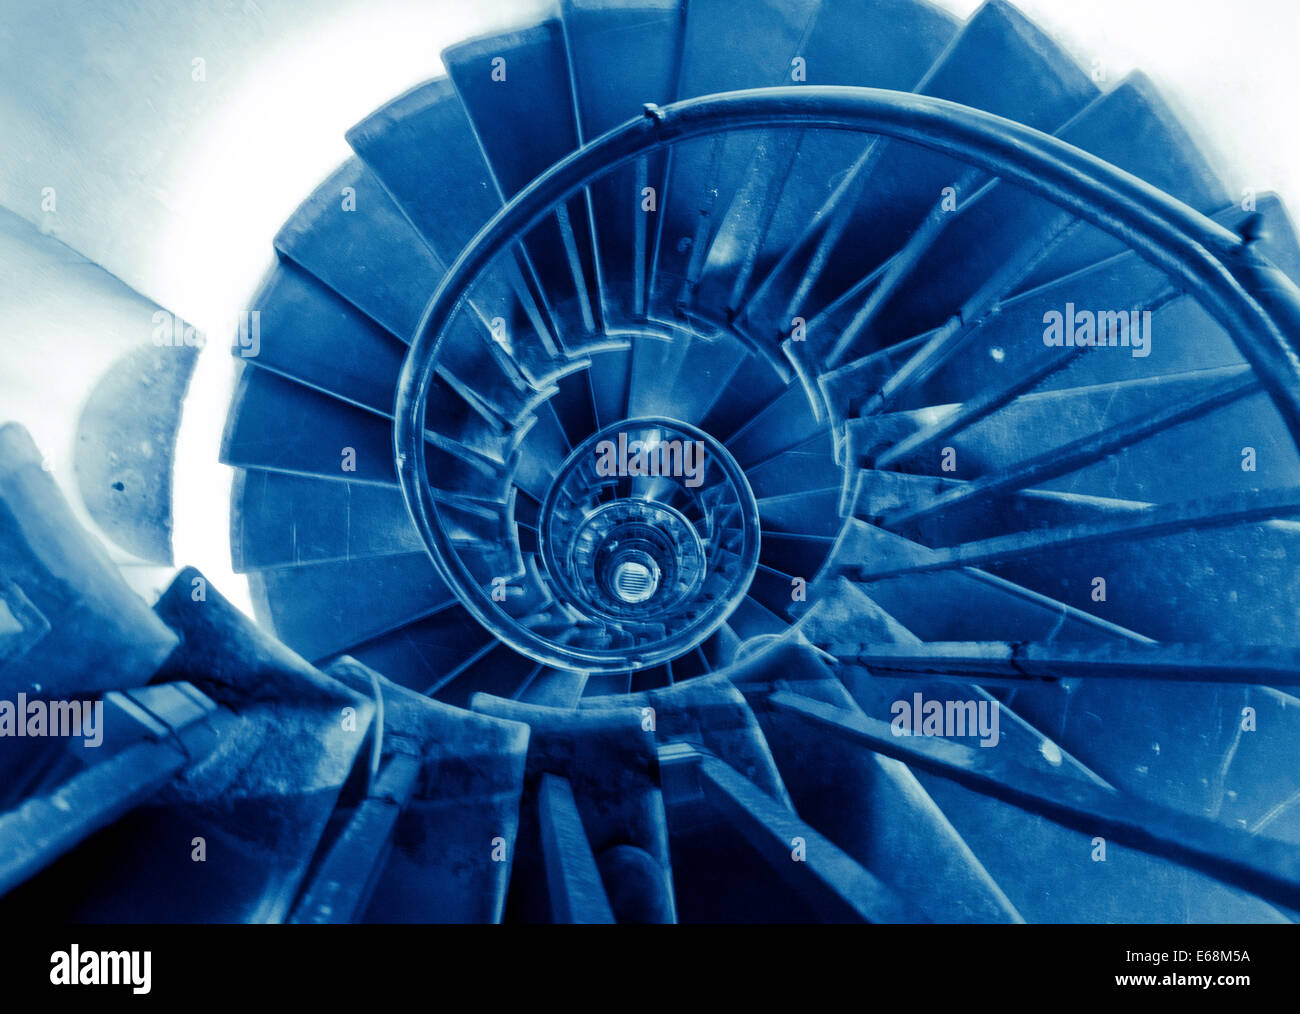 A spiral staircase bathed in blue light creates an interesting abstract image - Stock Image